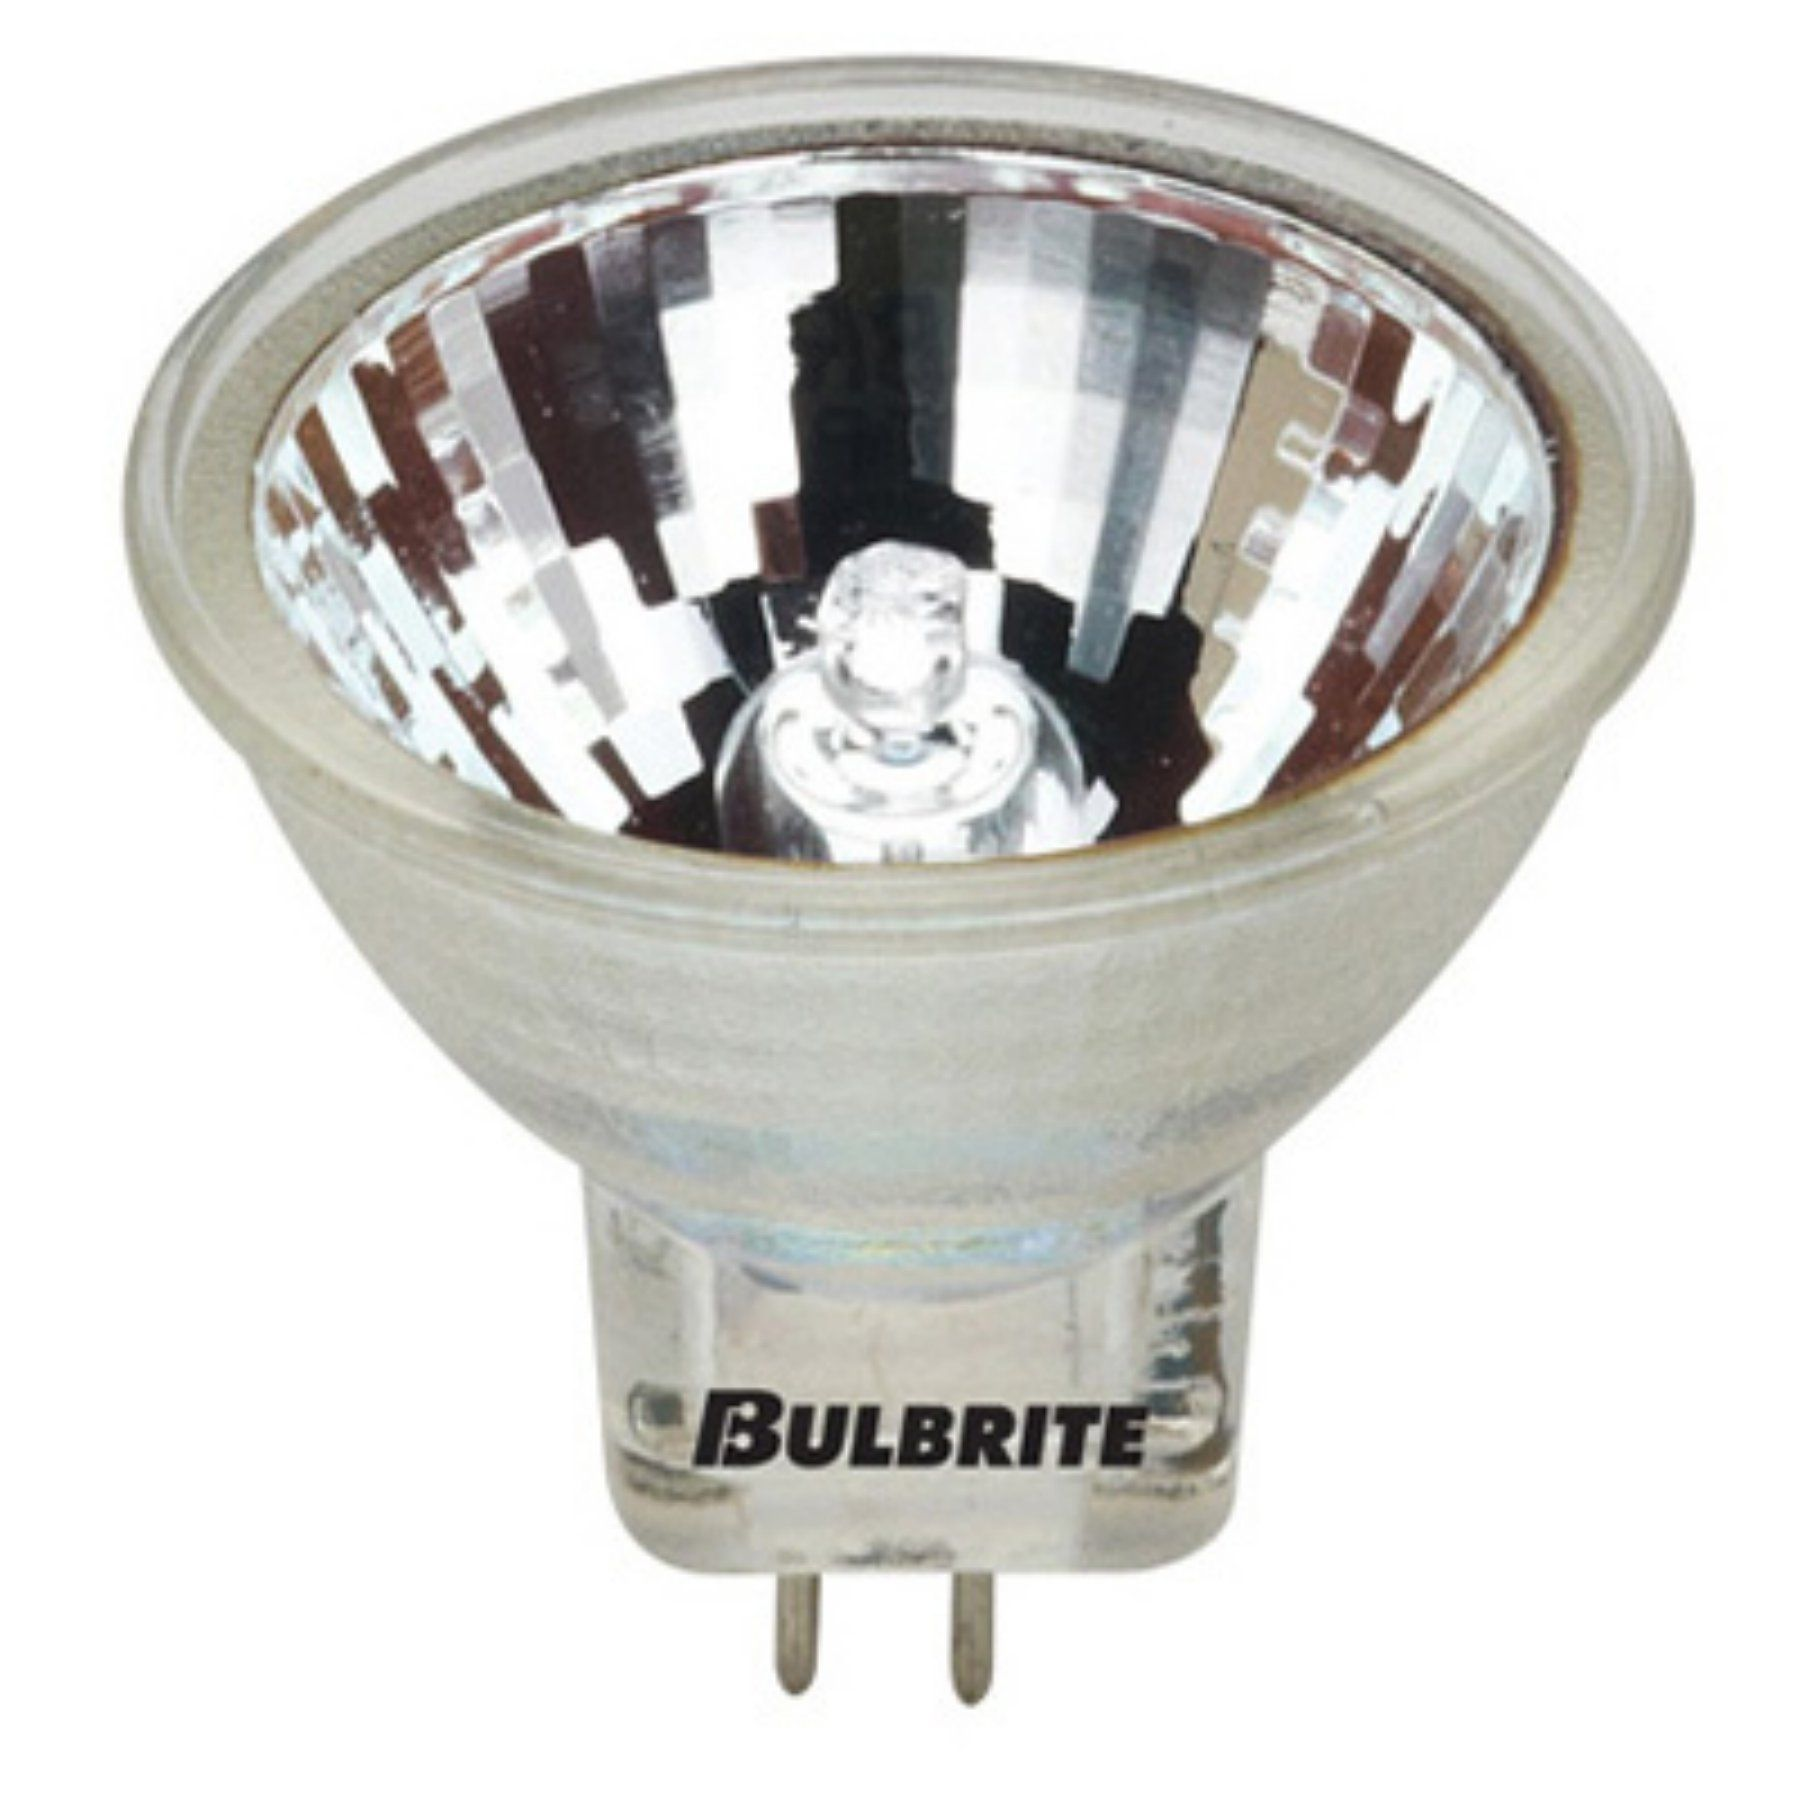 Bulbrite Dimmable MR11 Halogen Gu4 Base Light Bulb - 12 pk. - BULB713